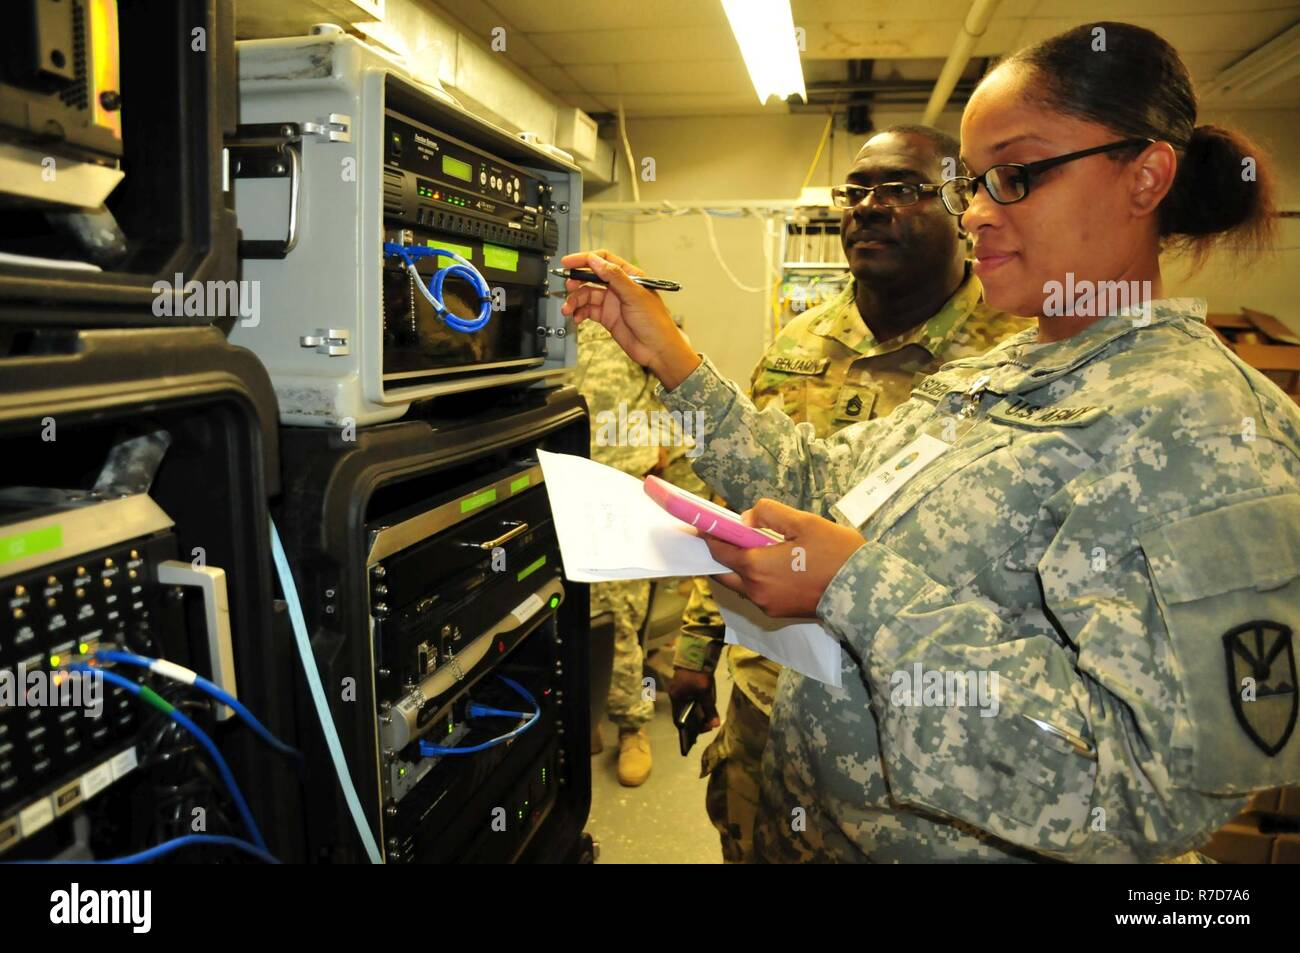 Spc. Brooke Ramsden, an information technology specialist, Joint Force Headquarters, Virgin Islands National Guard, troubleshoots the Joint Incident Site Communications Capability while Sgt. 1st Class Ofari Benjamin, communications lead, guides her during Vigilant Guard 17-03 in St. Thomas, May 16. Members of the J6 Information Management Branch supported the mission in terms of all computer communication-data, and telecom or telephone capabilities. Stock Photo